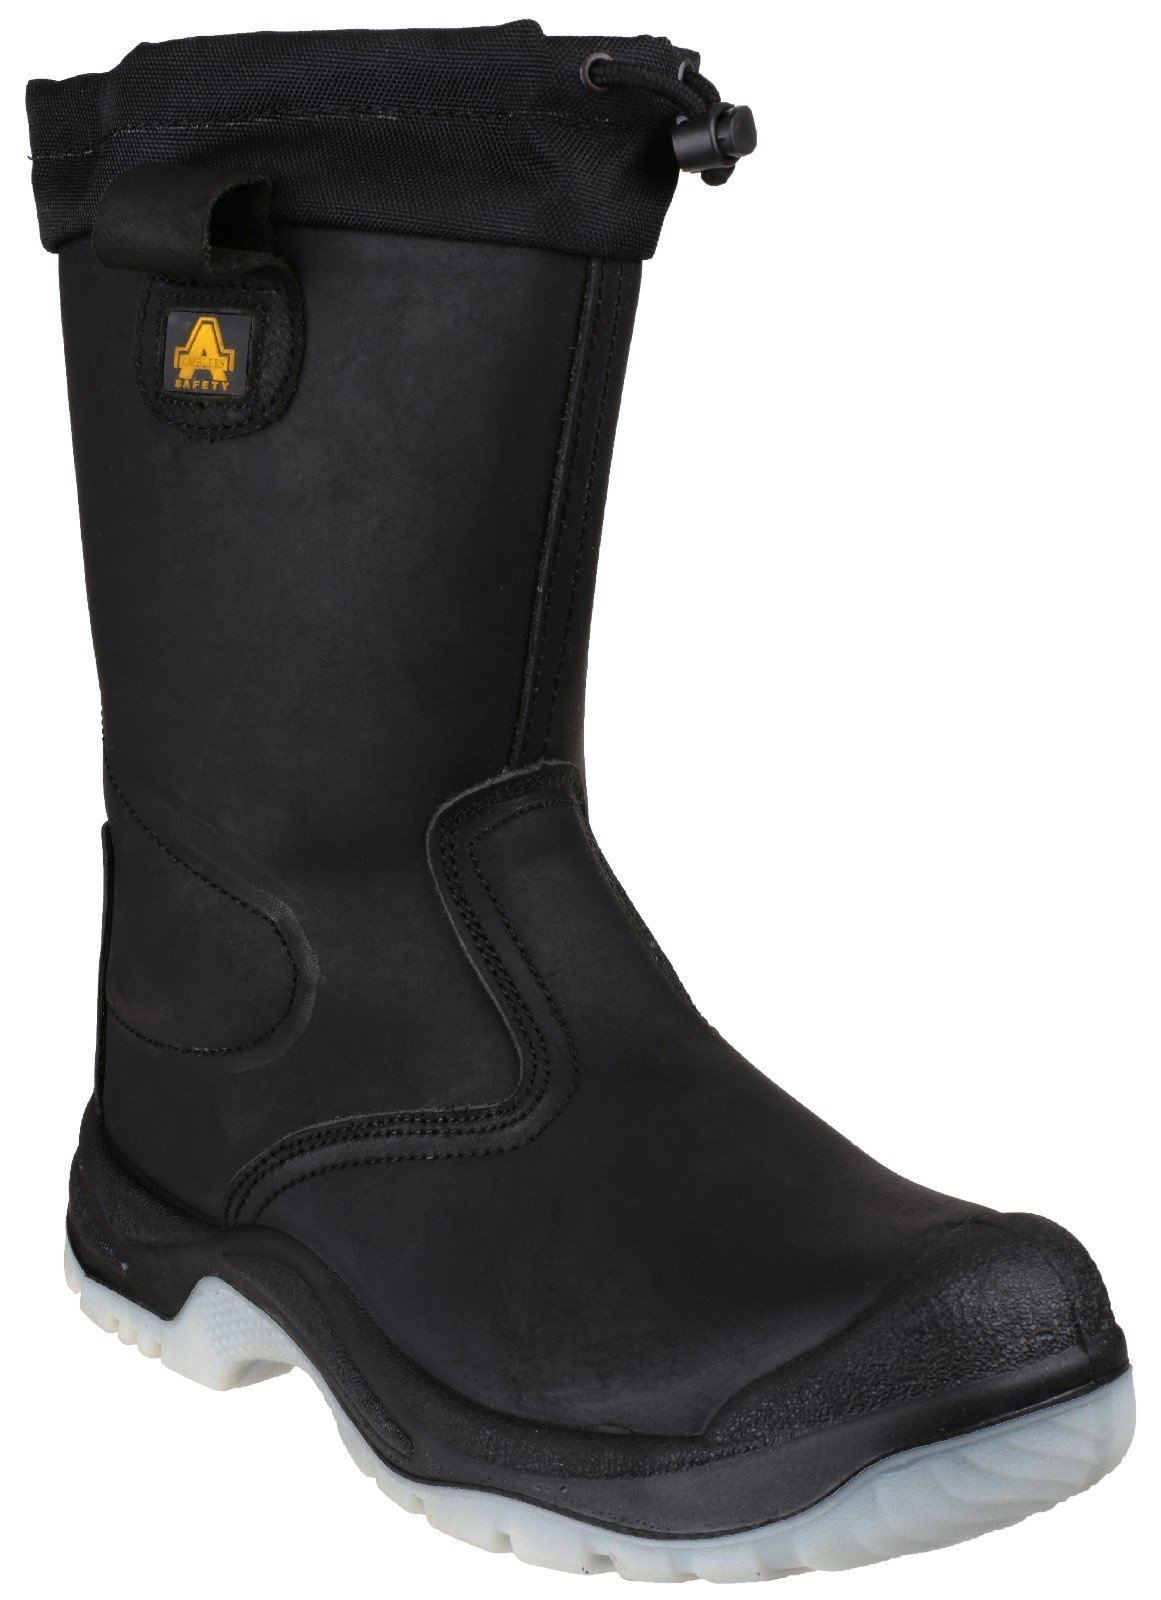 Amblers Unisex Safety Water Resistant Pull On Rigger Boot Black 18283 - Black 4